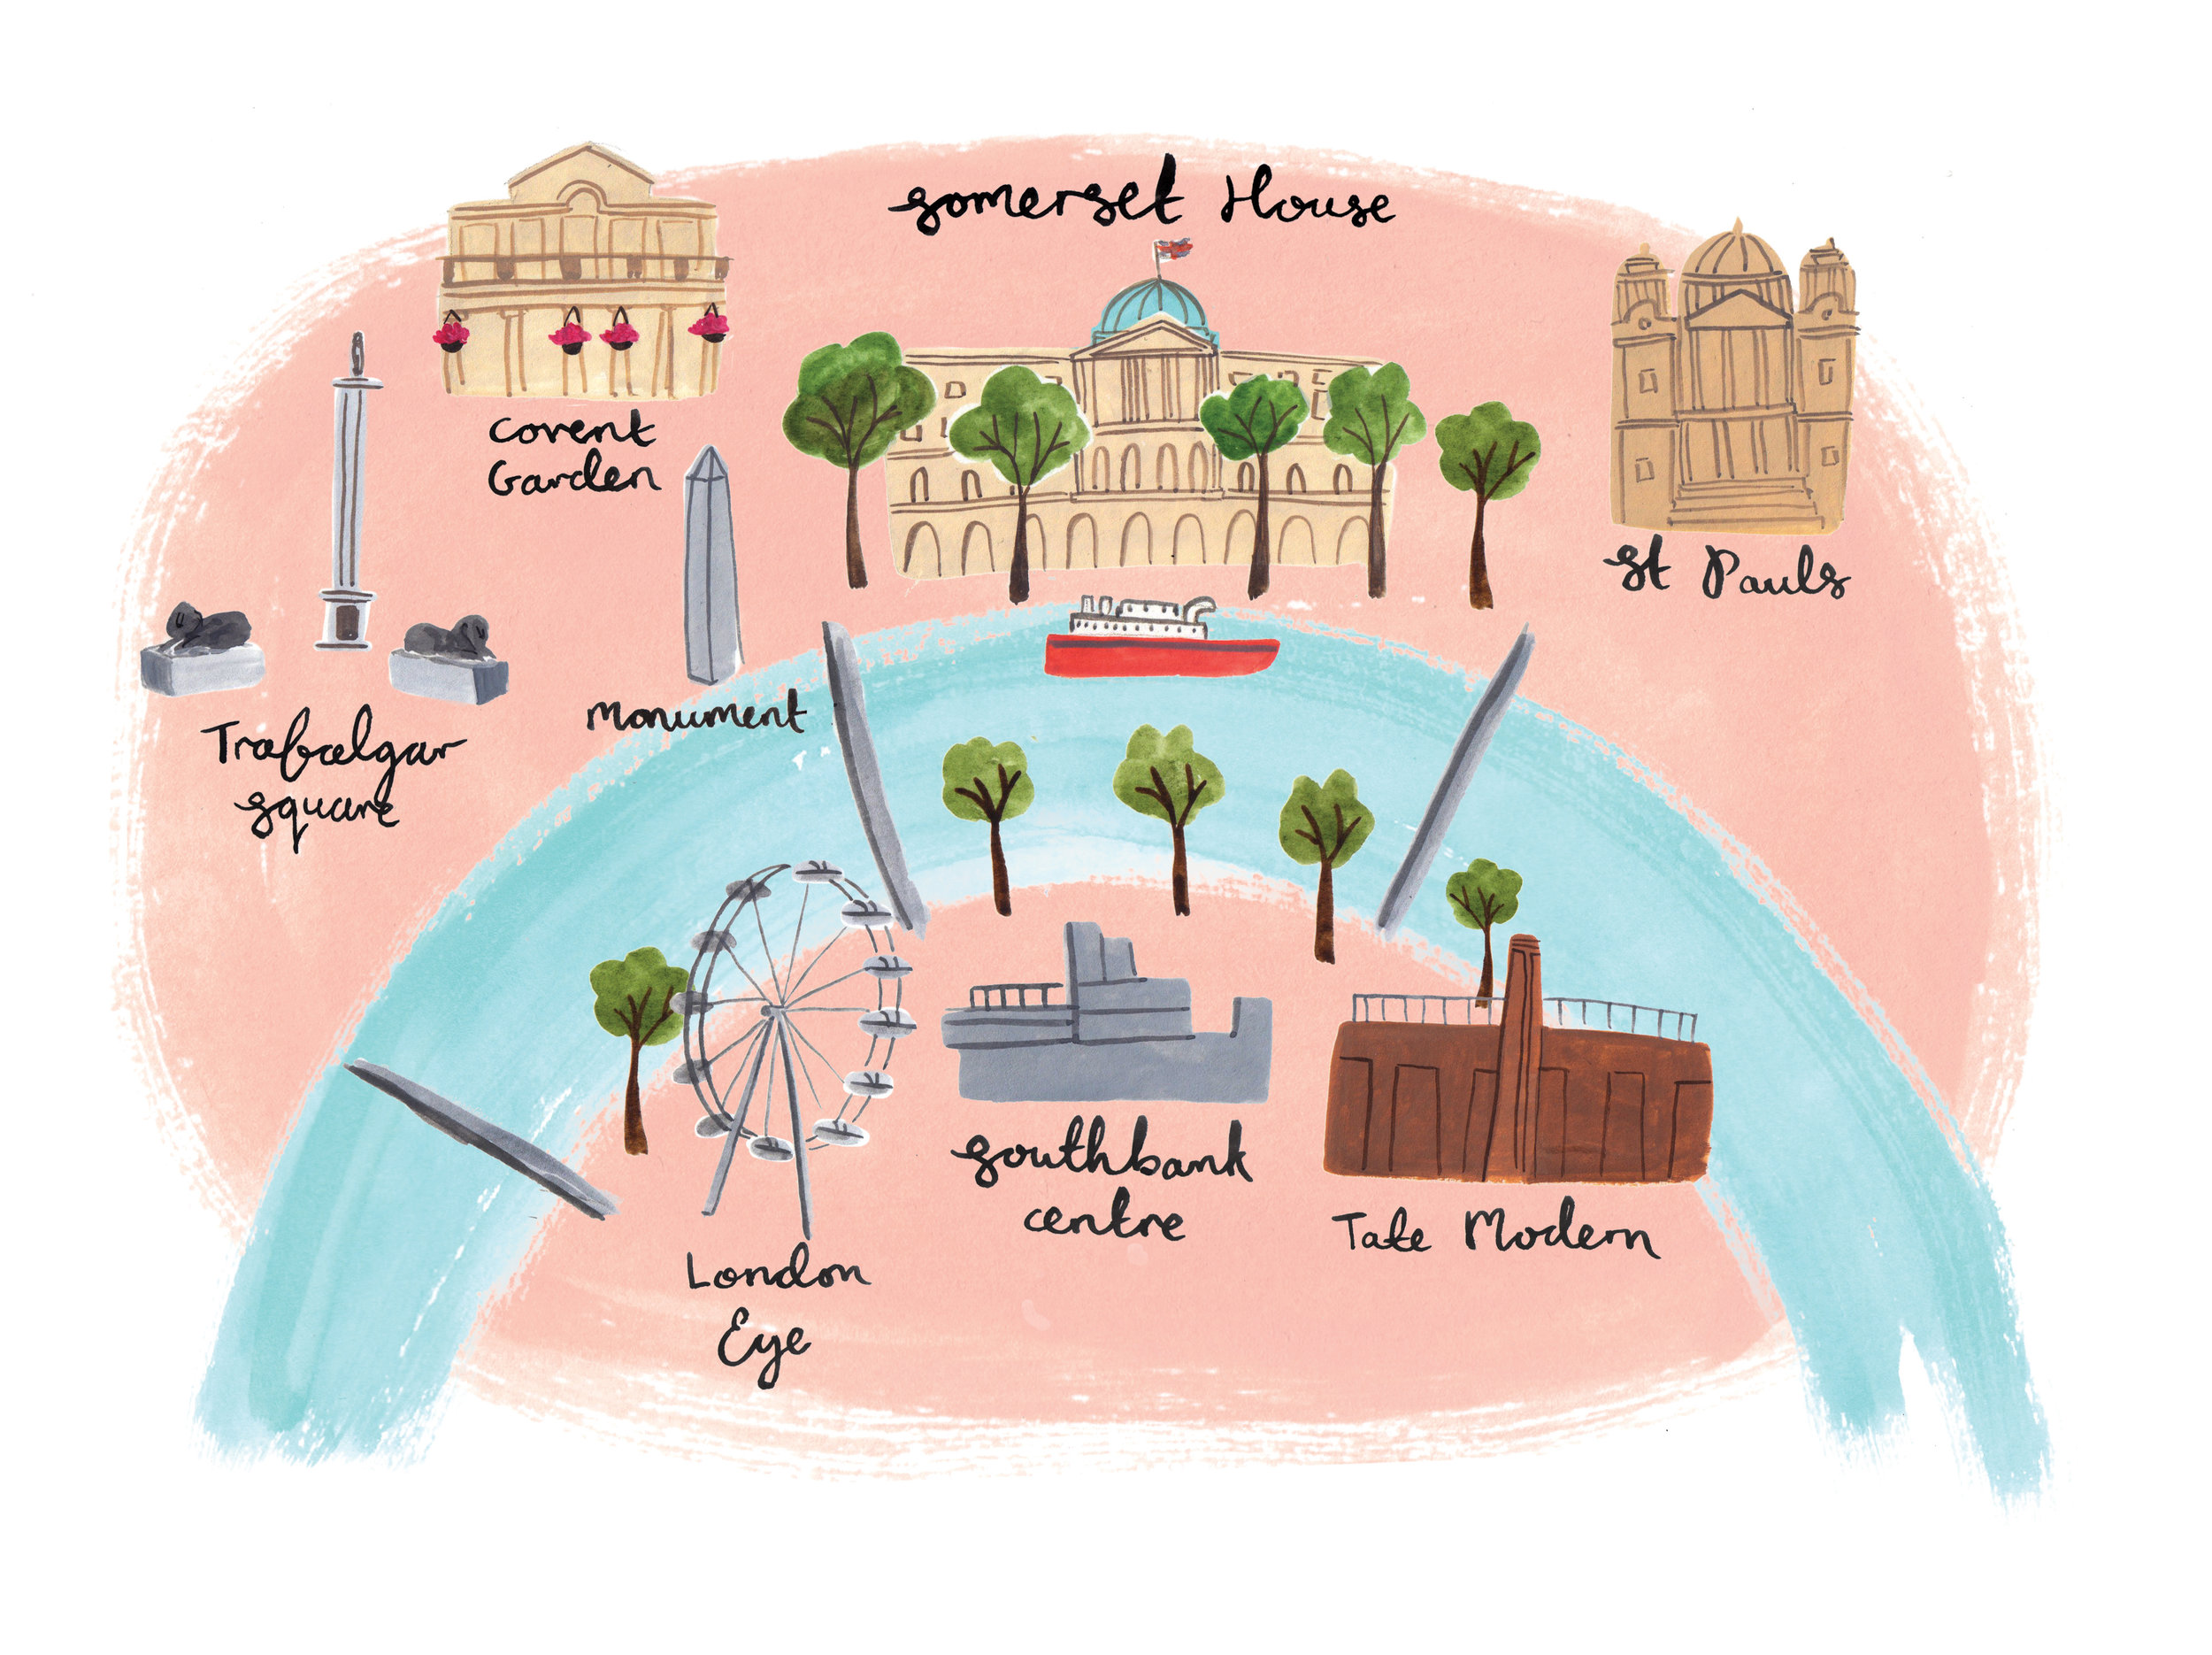 London Map for Somerset House